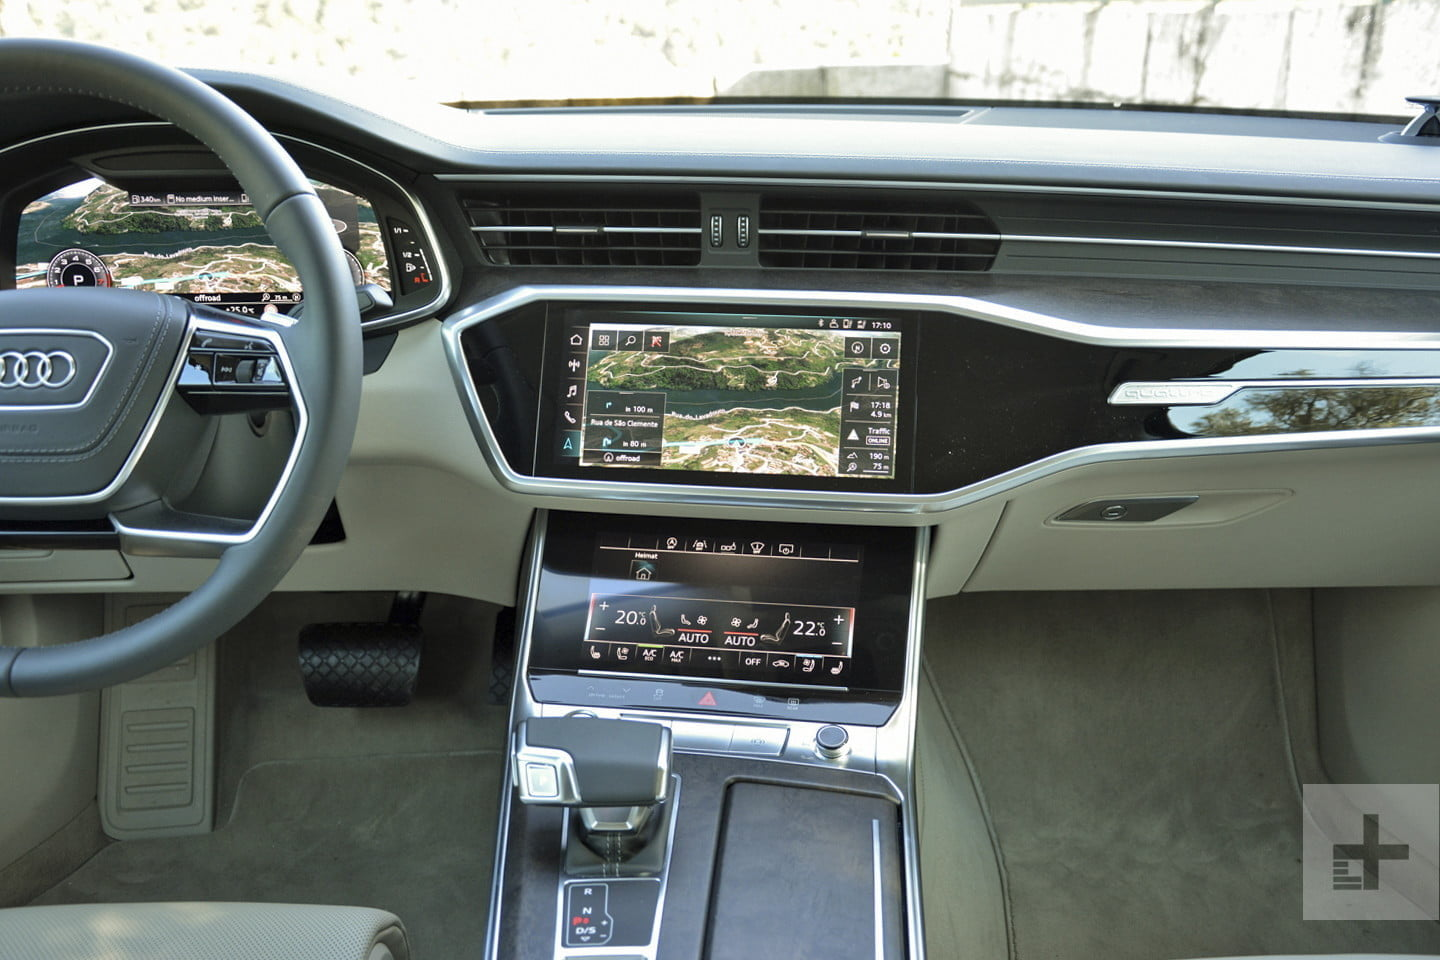 Audi sets the gold standard for in-car tech. Here's why